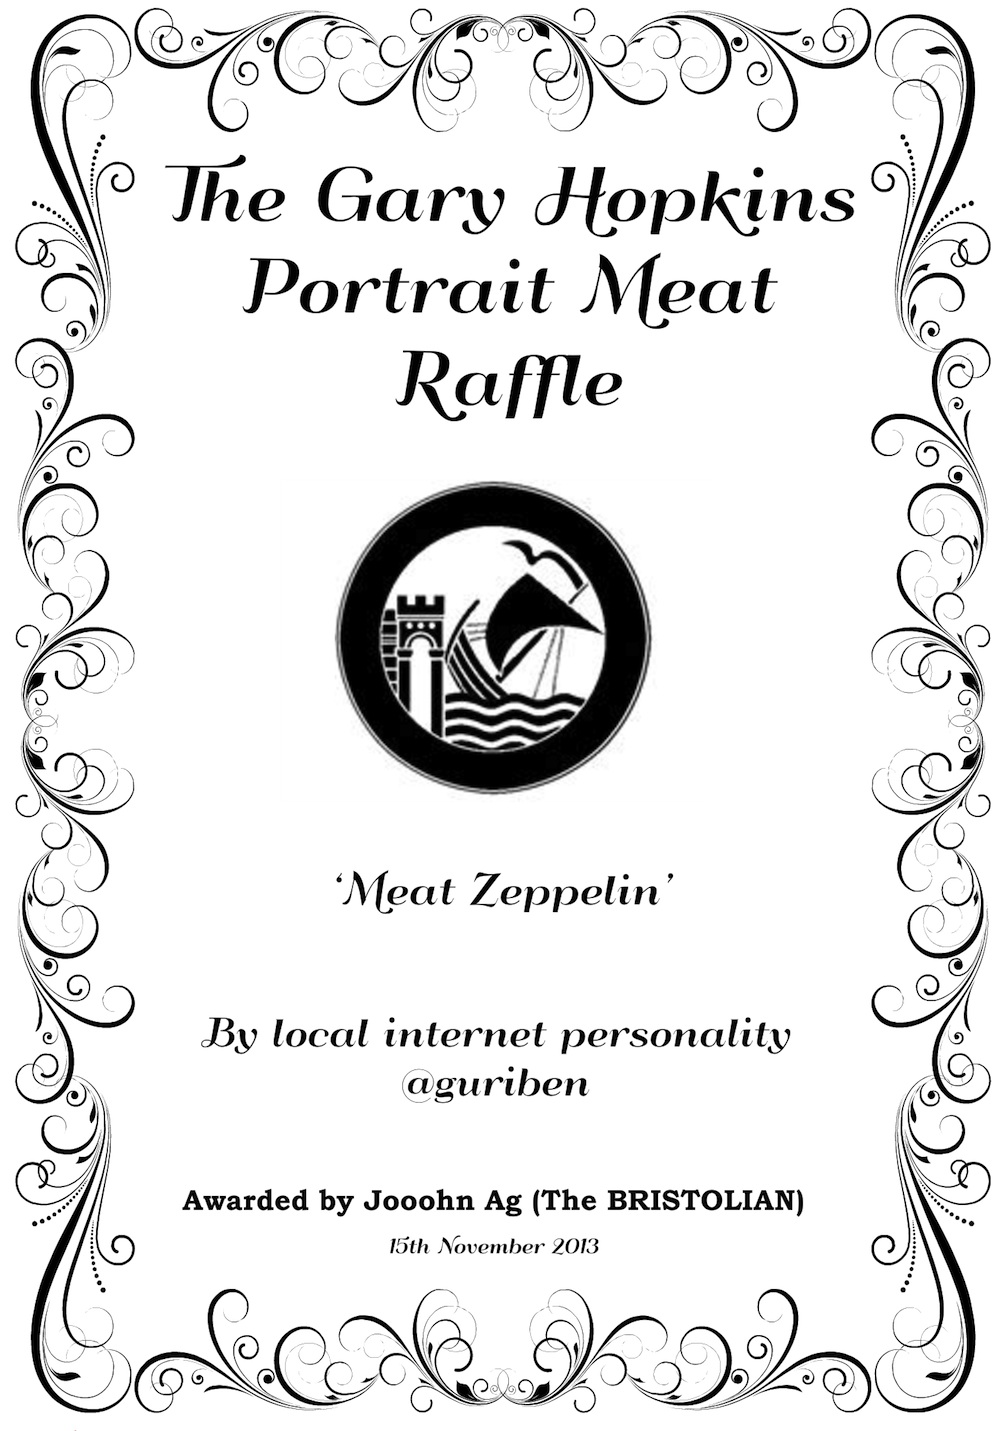 That Gary Hopkins Meat Raffle prize certificate in full